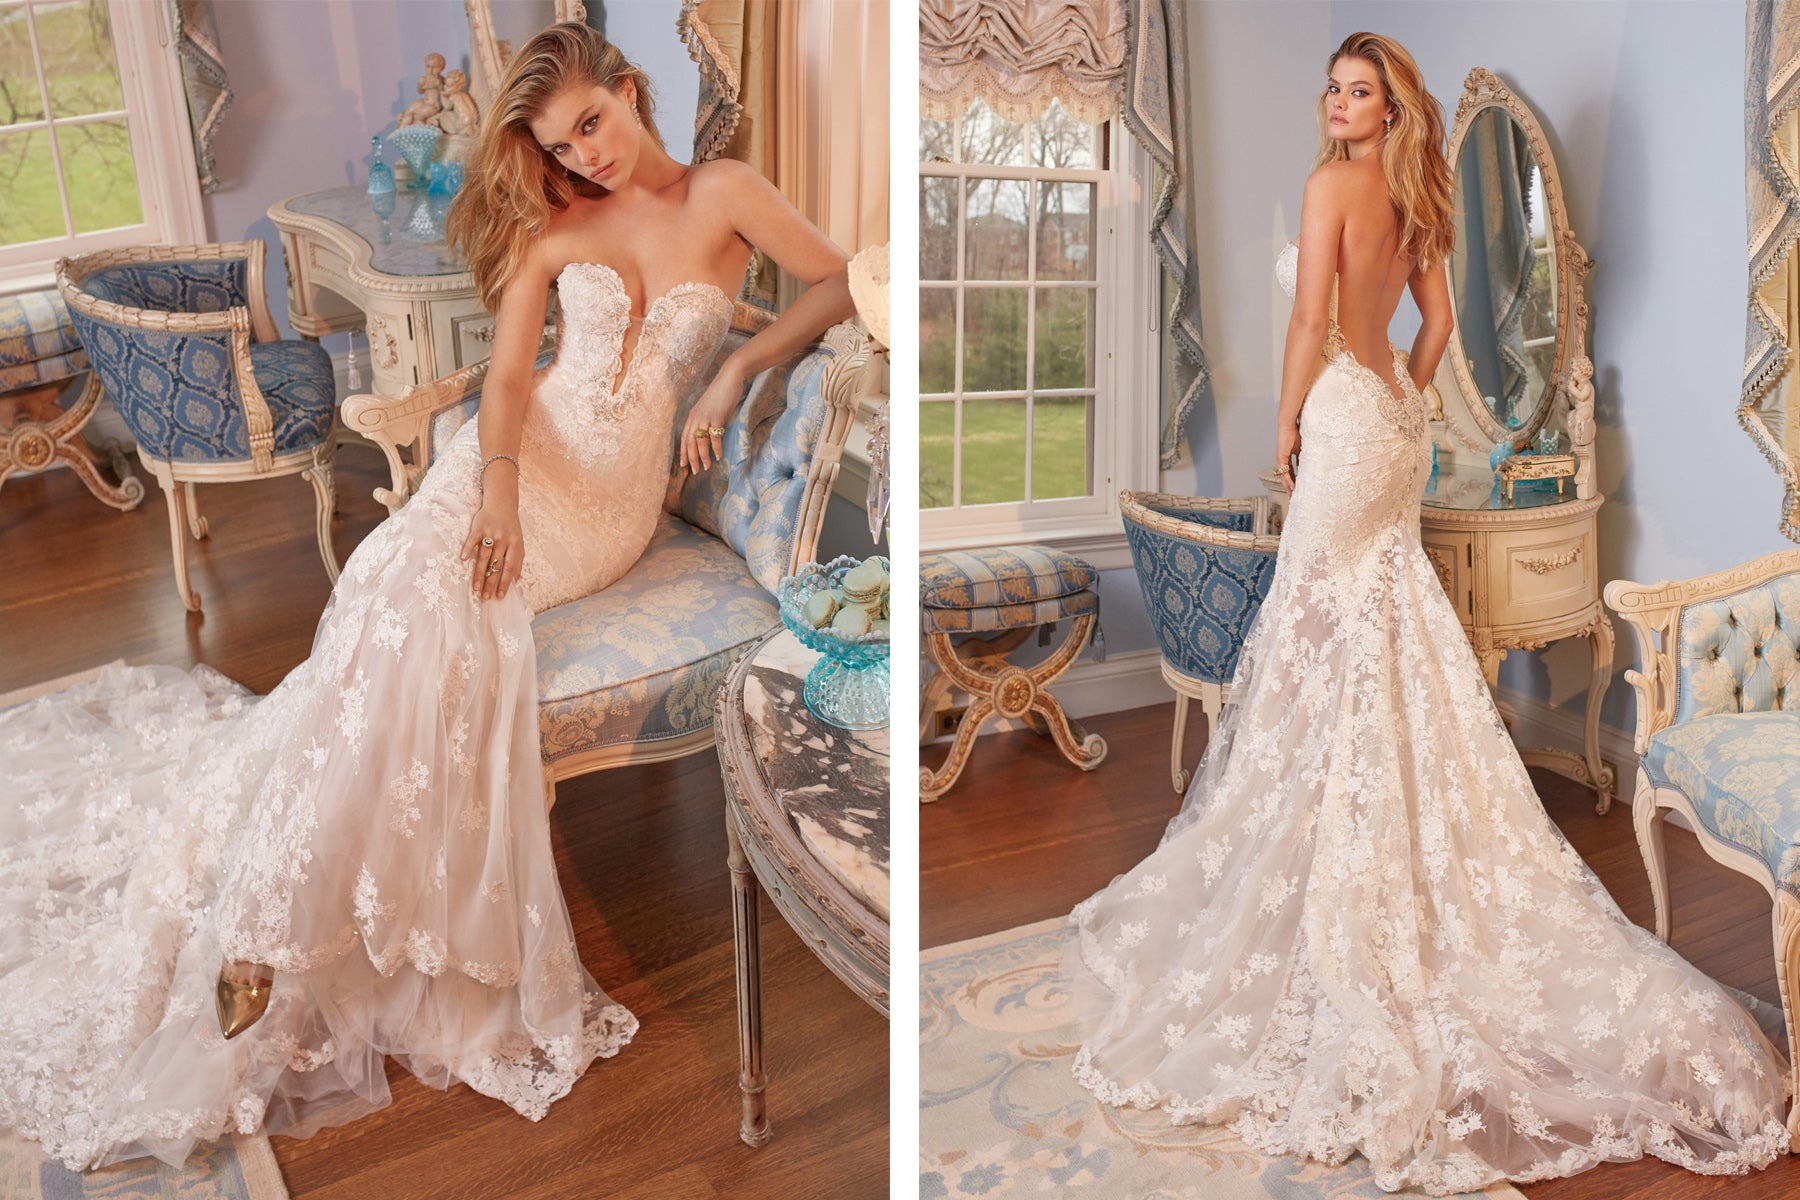 Eternal_Bridal_Wedding_Dress_Galia_Lahav_Haute_Couture_Queen_of_Hearts_Lorraine